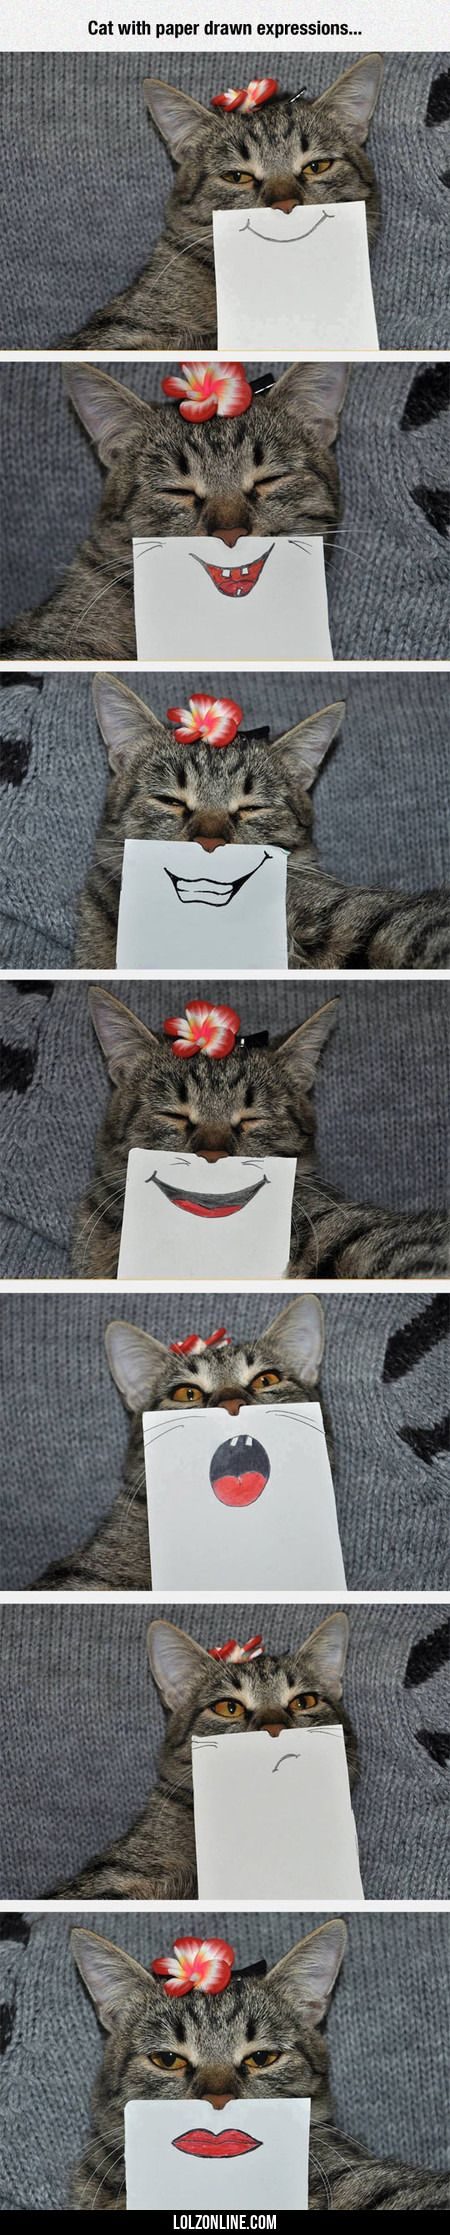 Cat With Paper Drawn Expressions...#funny #lol #lolzonline